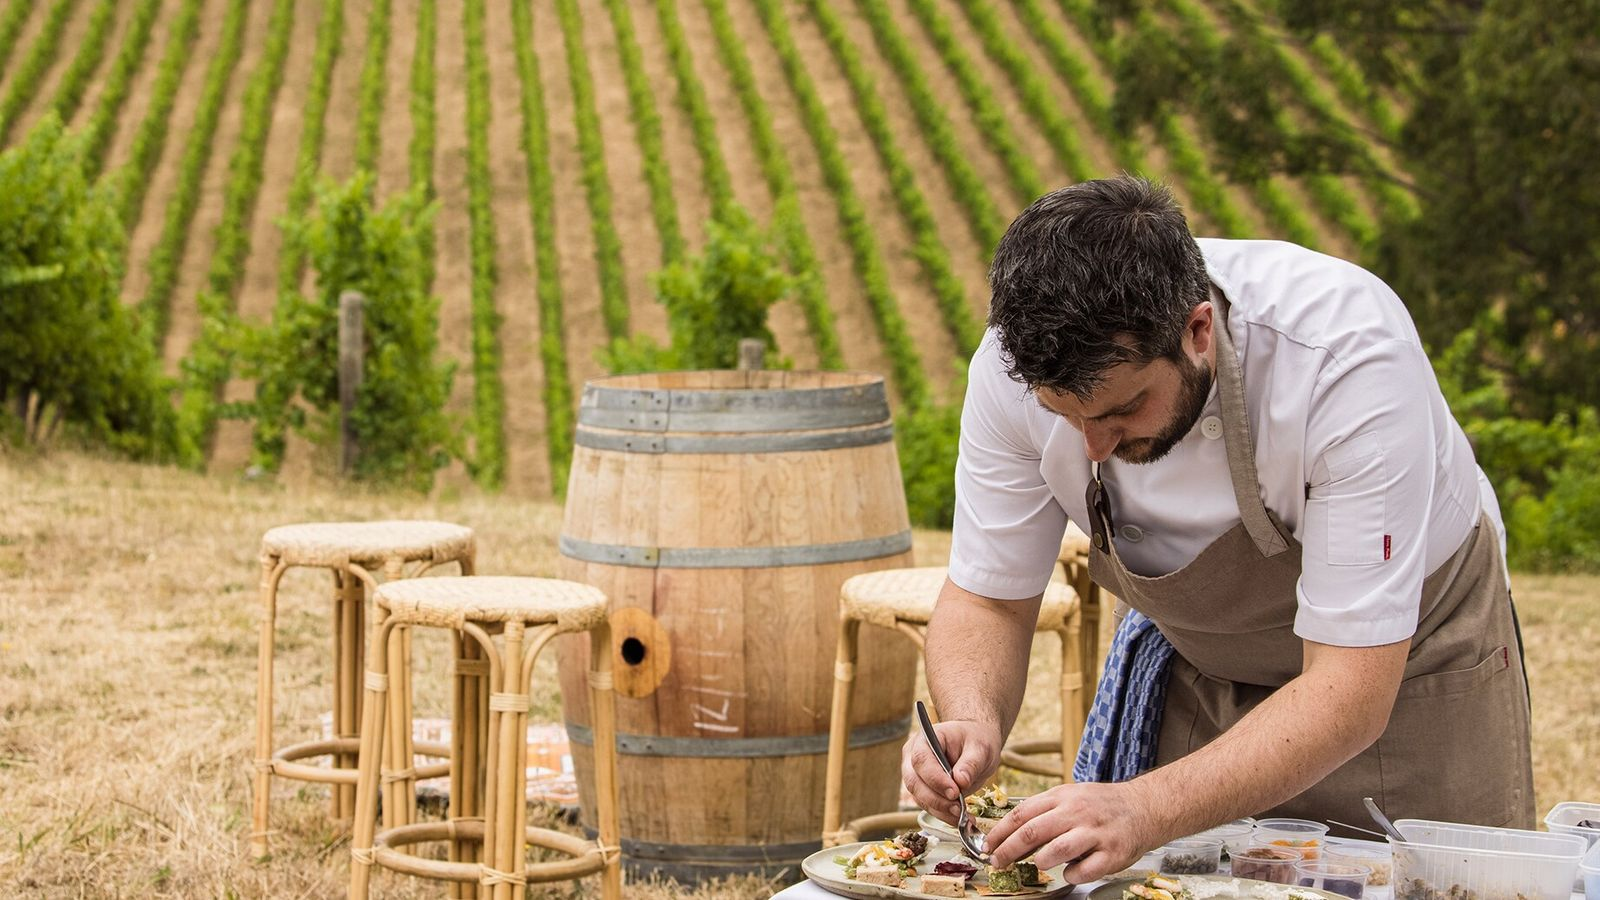 Discover what makes the vineyard city of Adelaide and surrounding wine regions so special at a ...